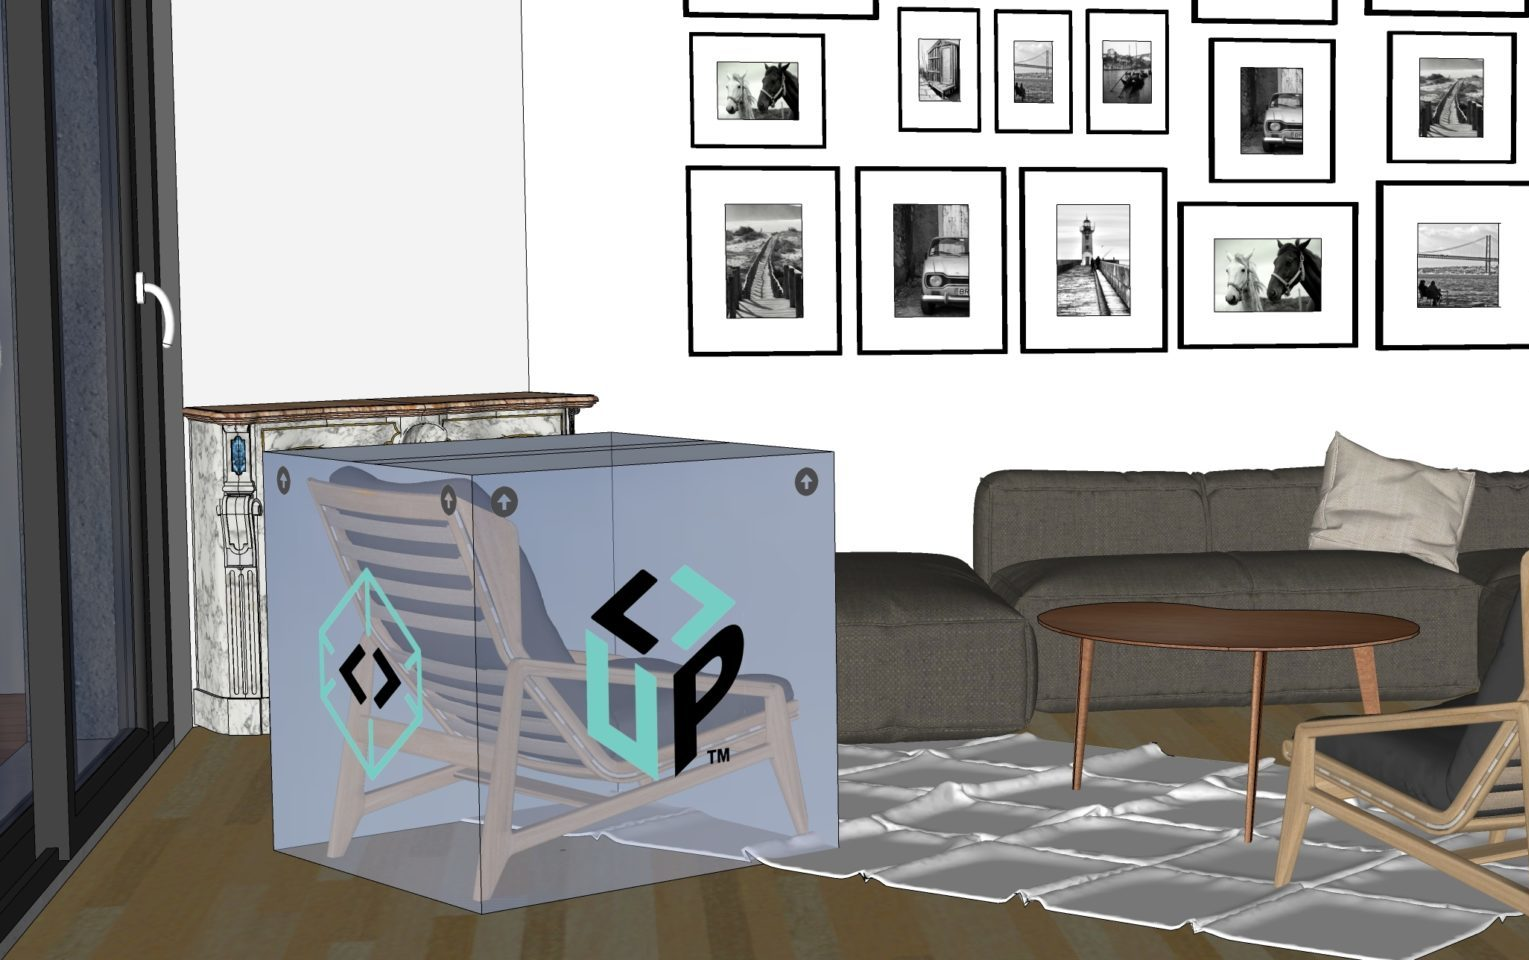 projet-sketchup-pour-up-demo-2